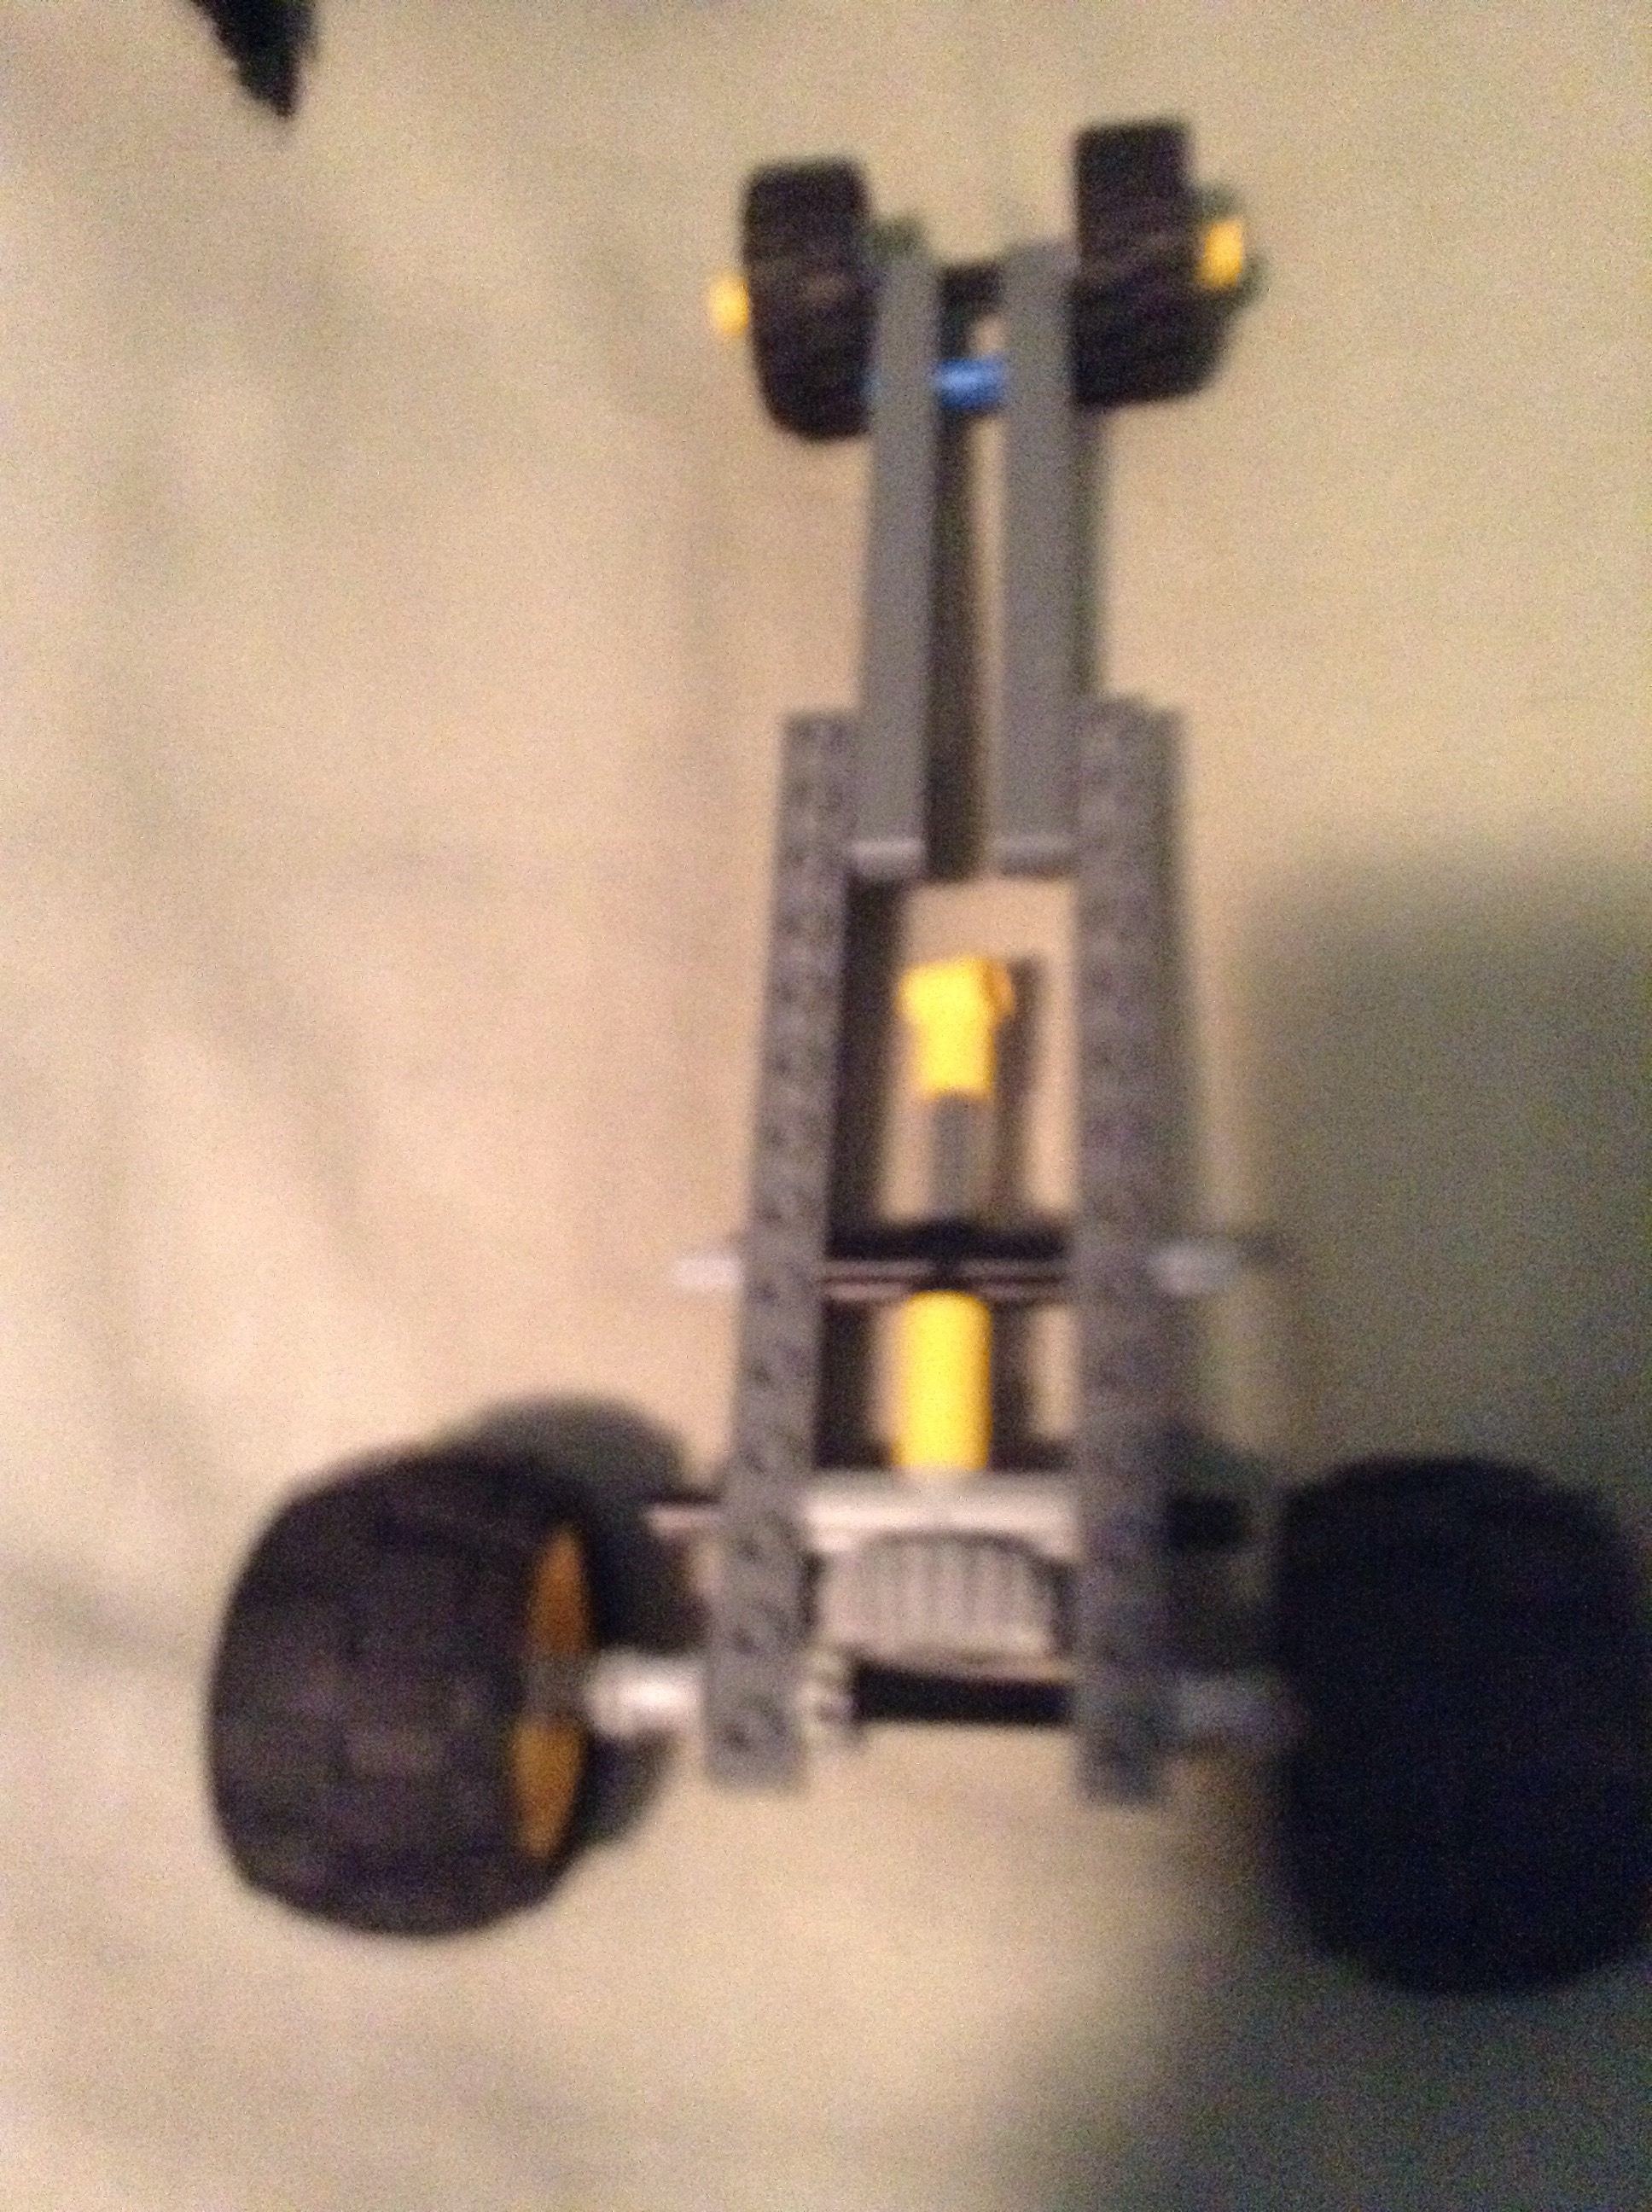 Rubberband Powered Lego Car